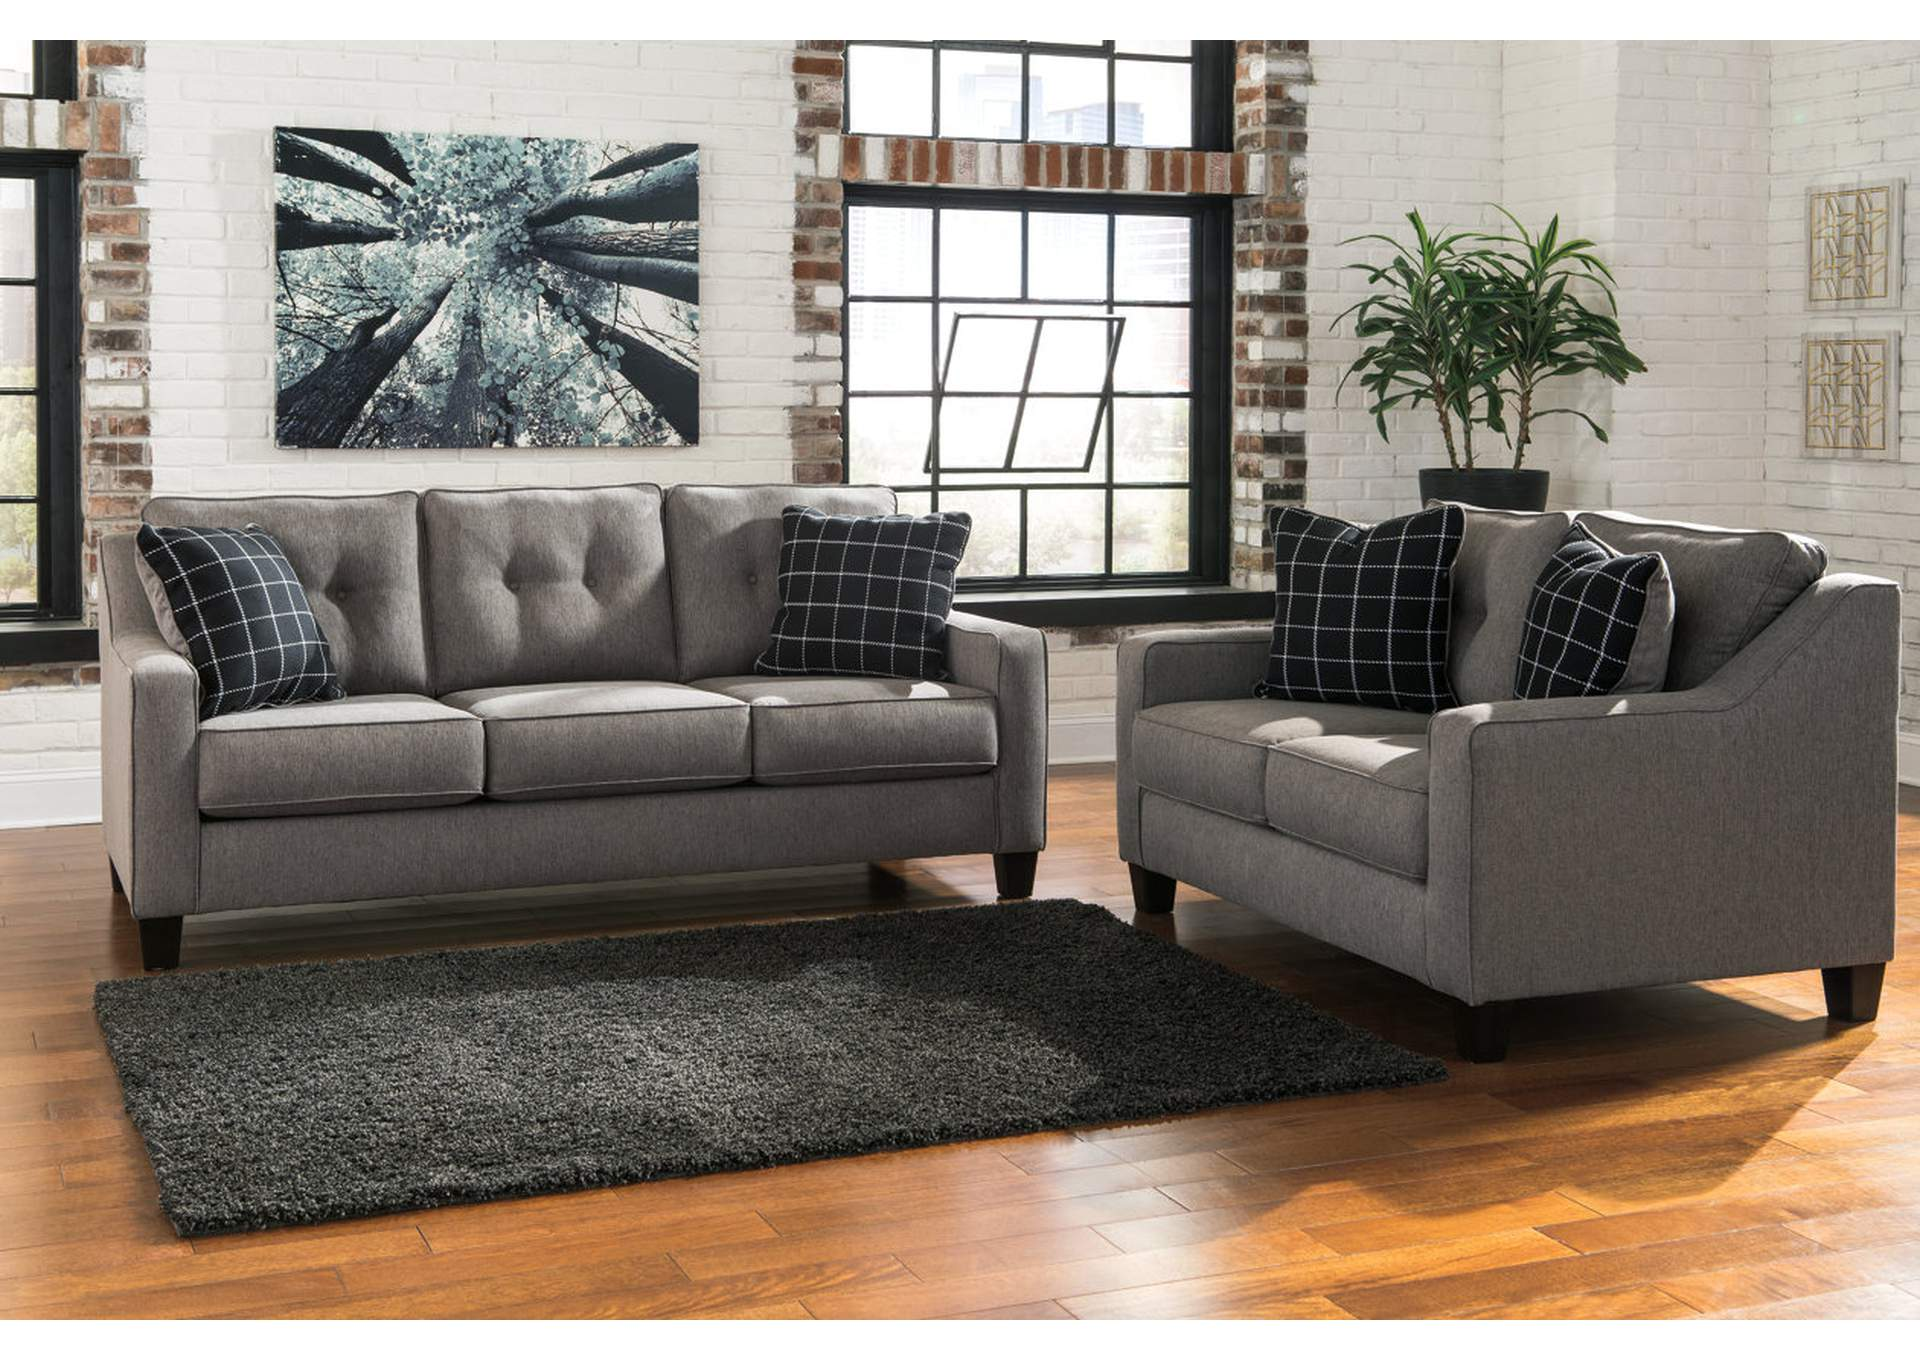 Furniture Outlet Chicago LLC  Chicago IL Brindon